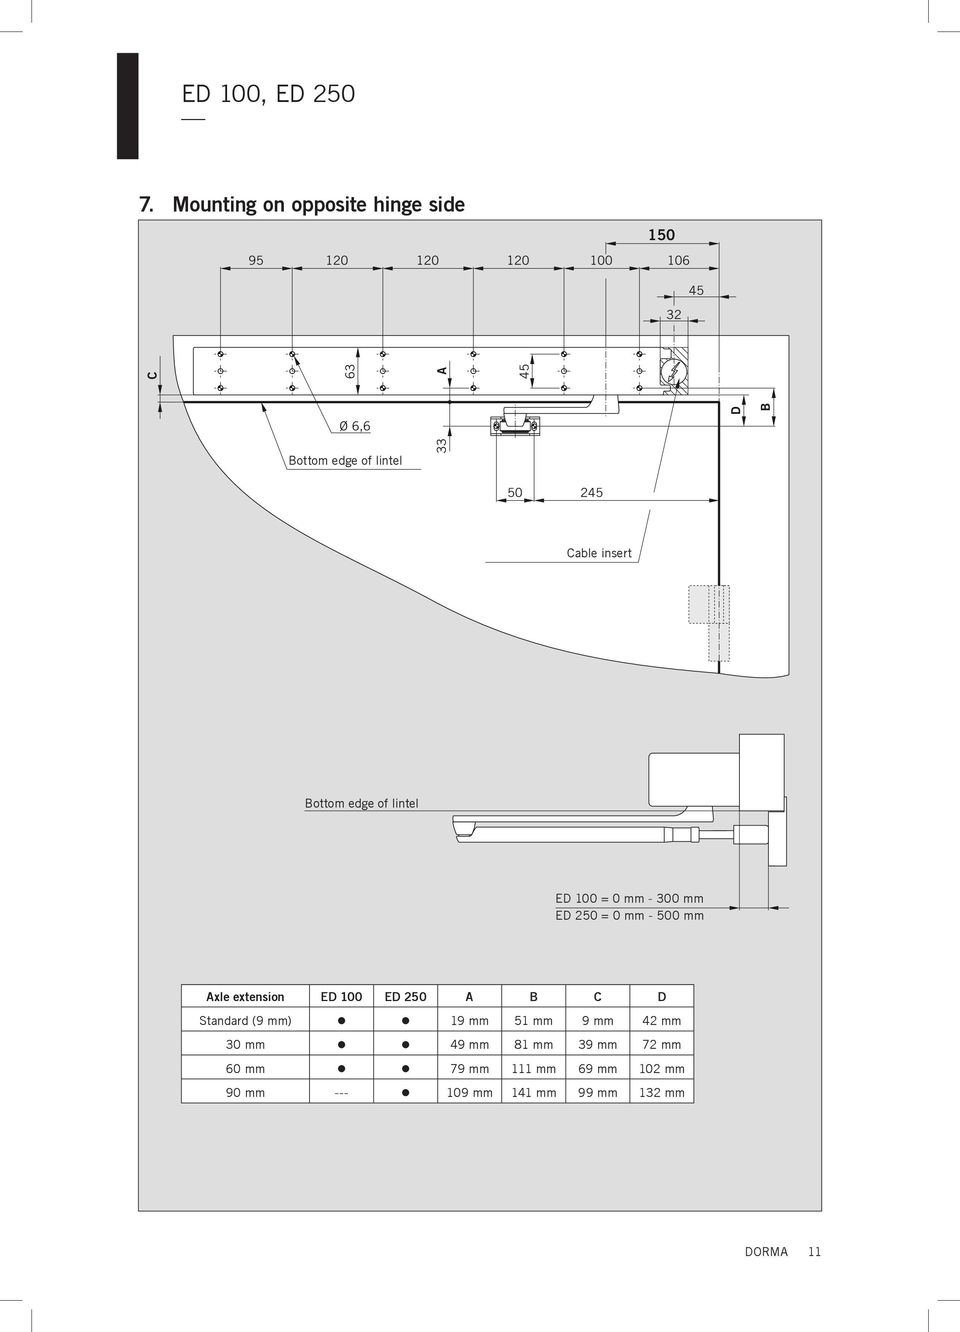 Ed 100 250 Mounting Instructions Pdf Tormax Wiring Diagram Mm 500 Axle Extension A B C D Standard 9